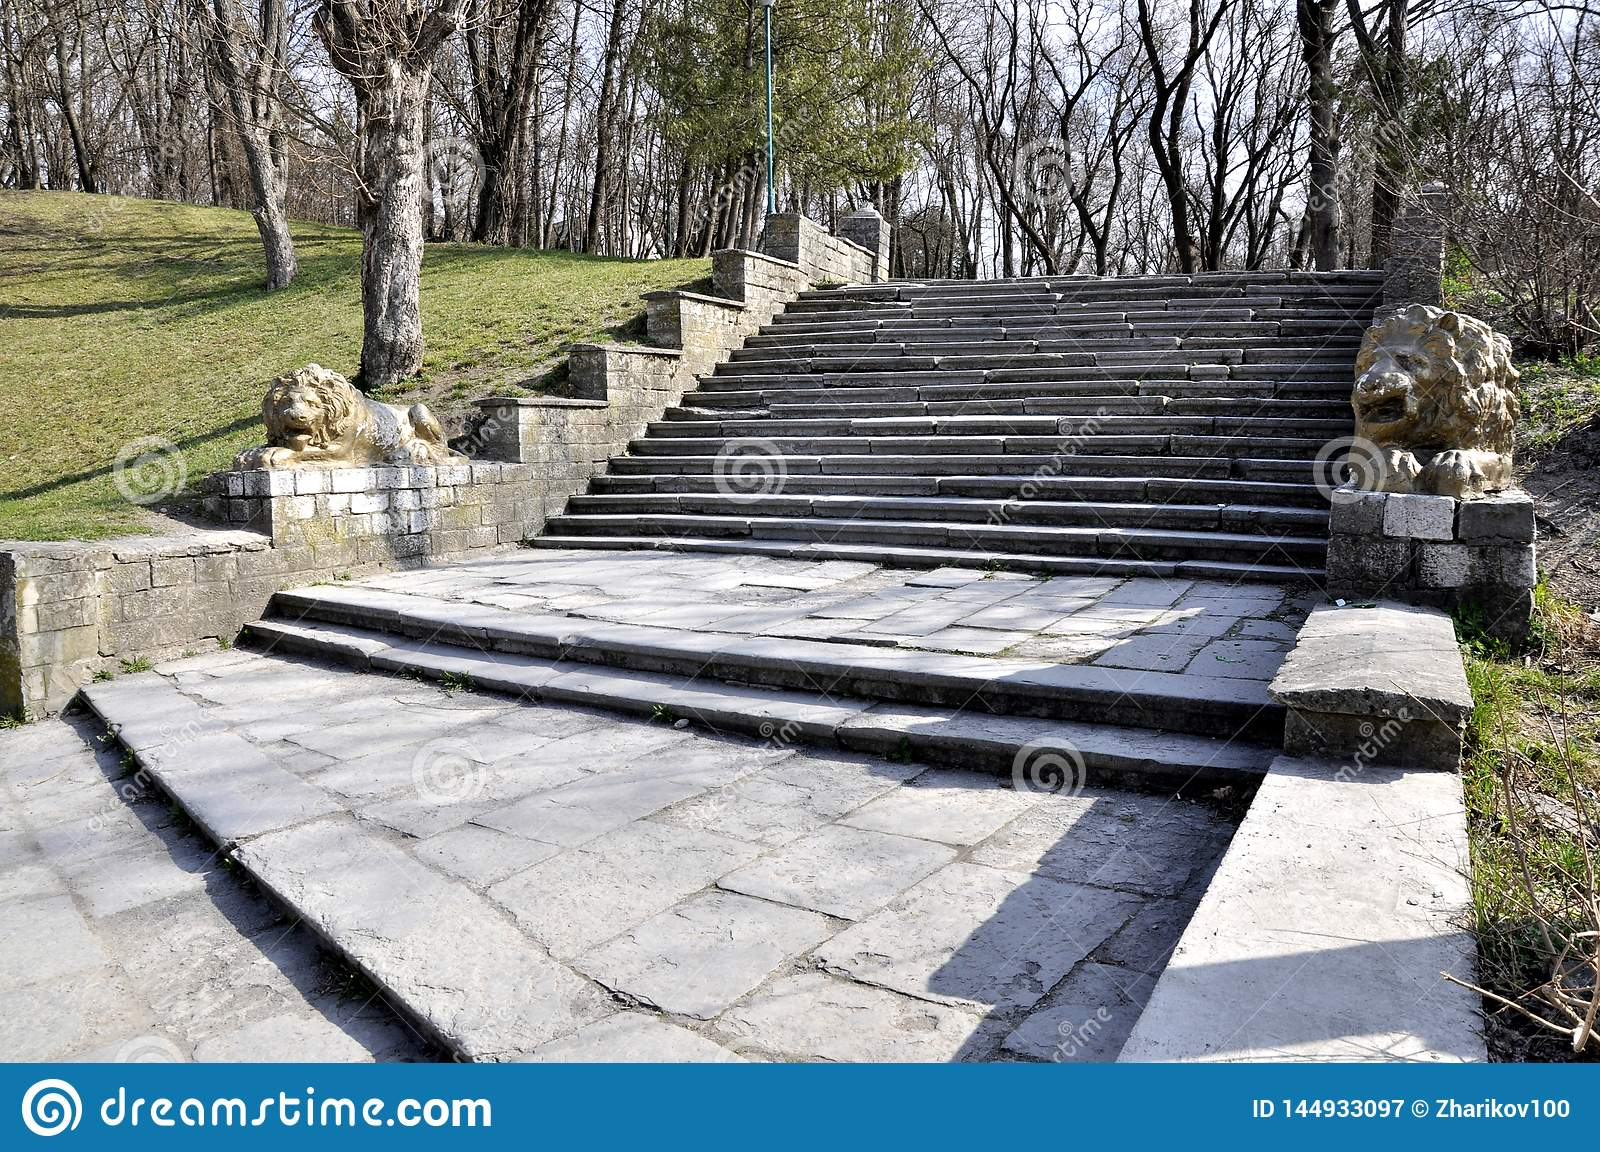 Staircase in the park